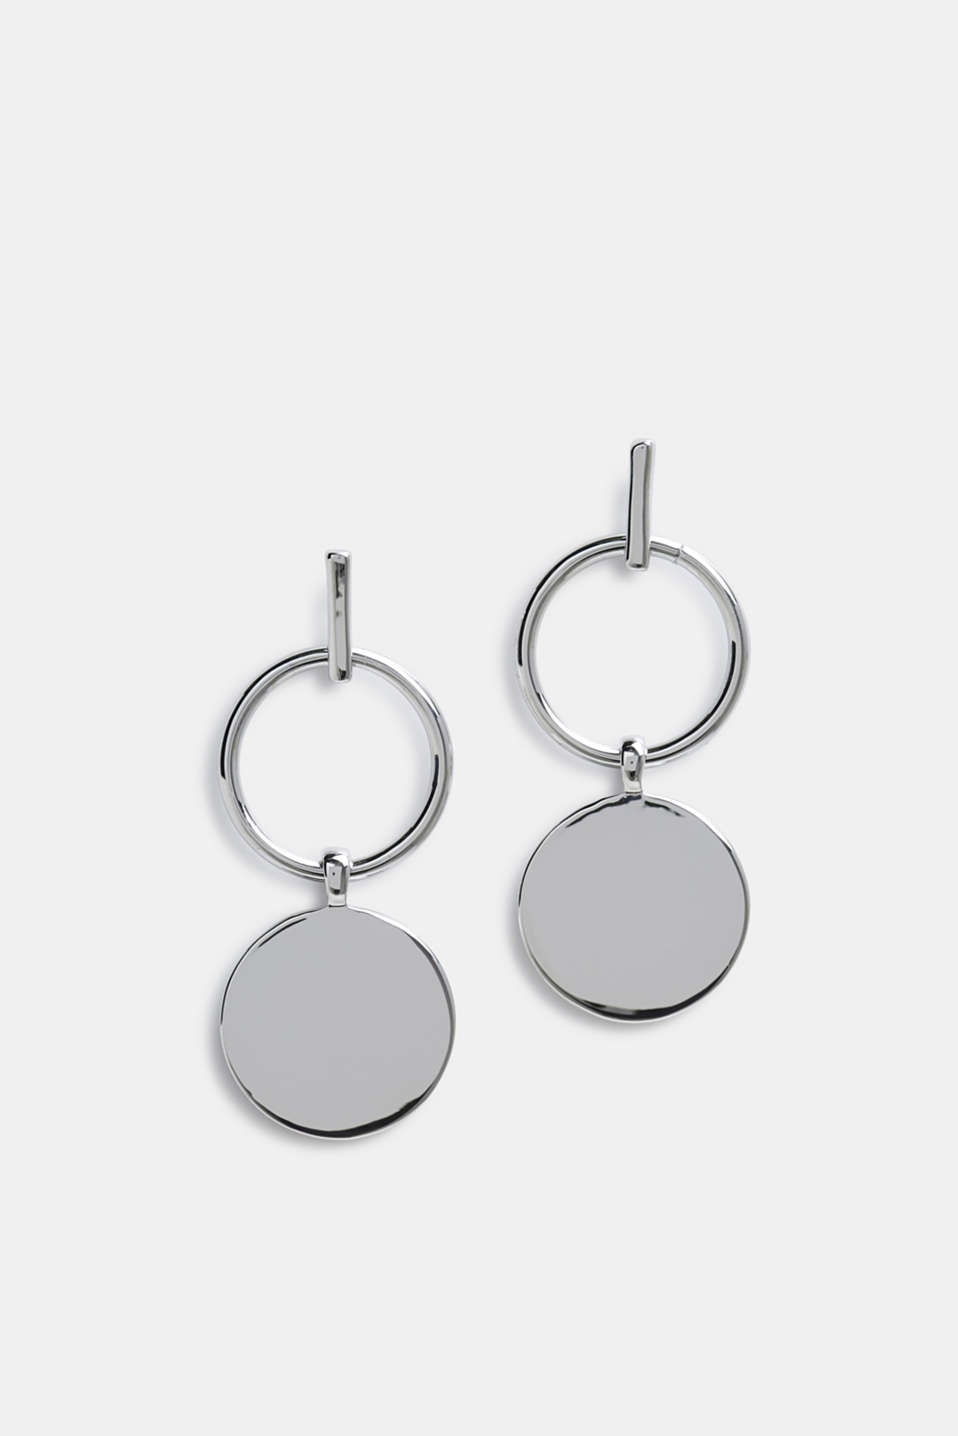 Esprit - Stud earrings with metal discs